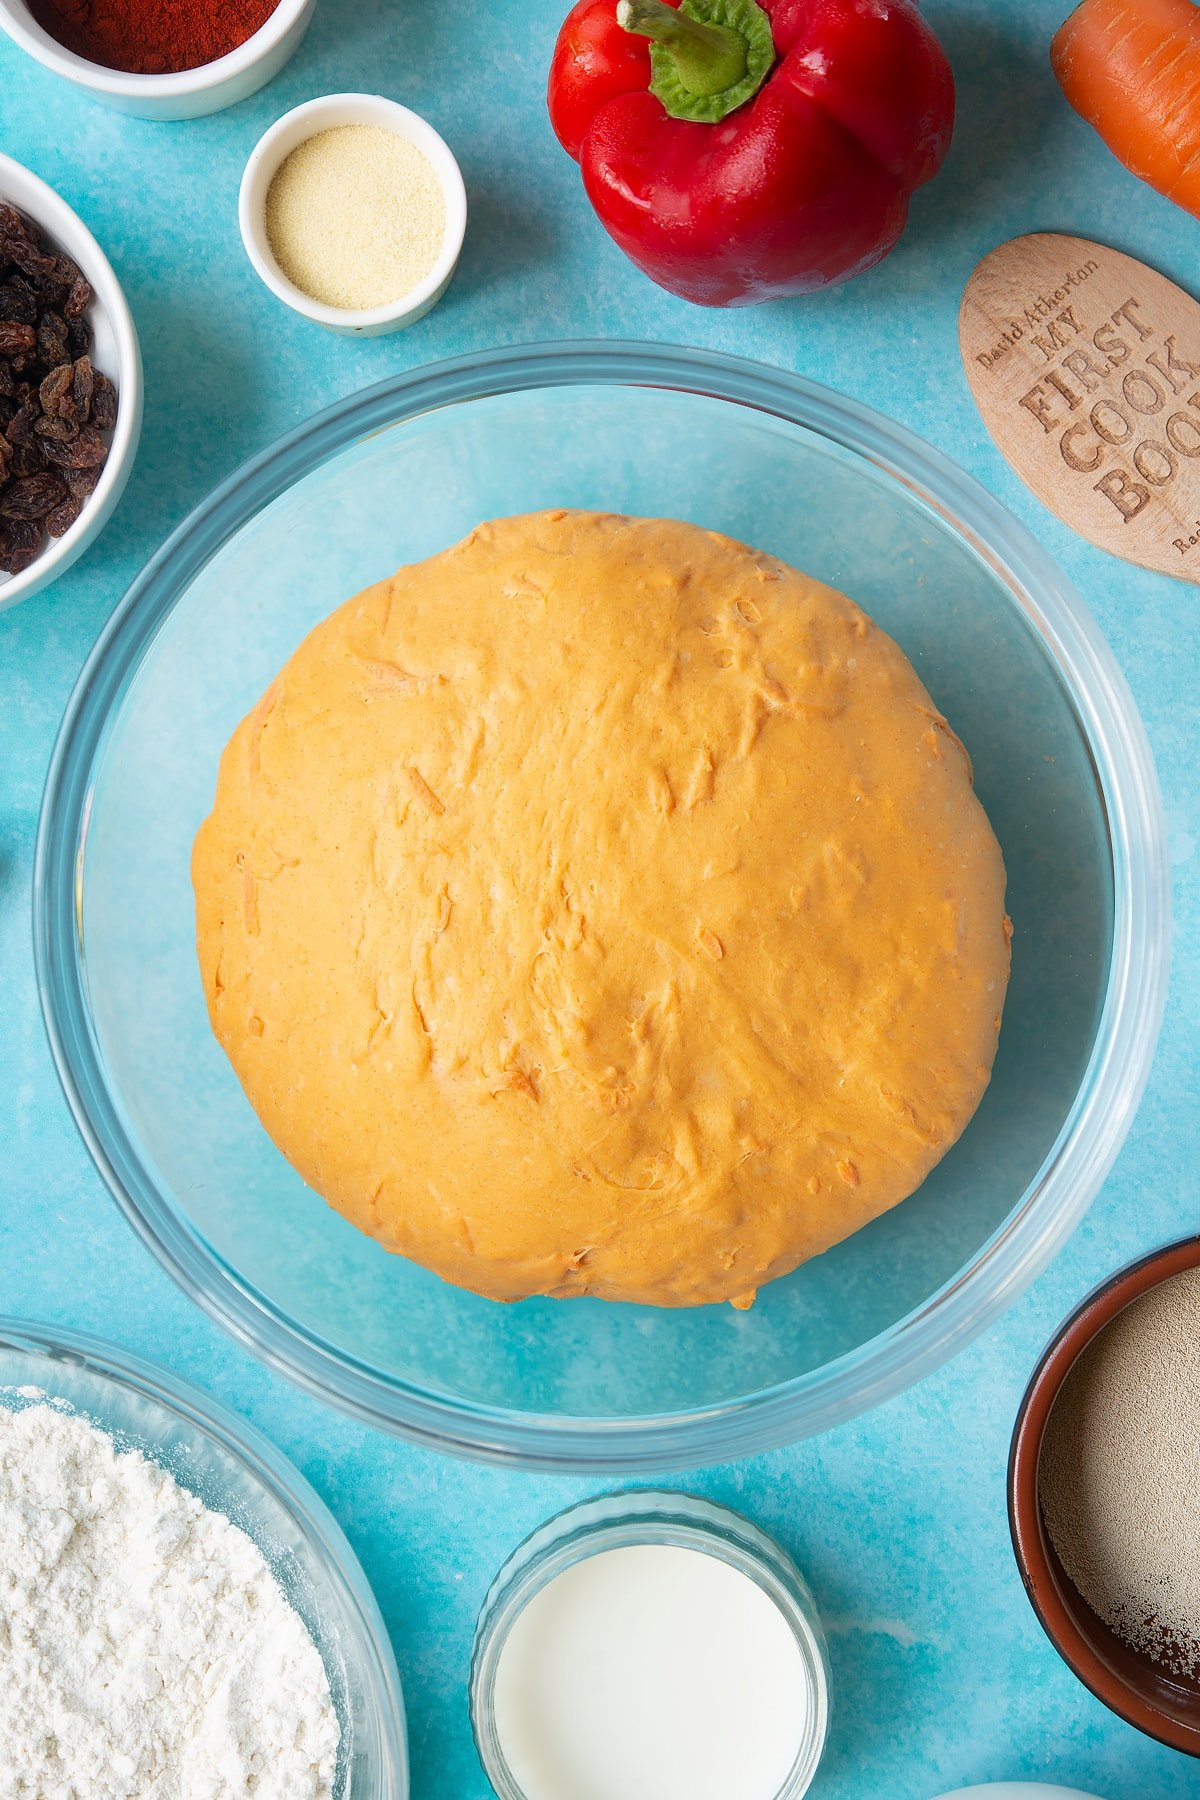 Proved paprika and carrot bread dough in a bowl. Ingredients to make bread snakes surround the bowl.